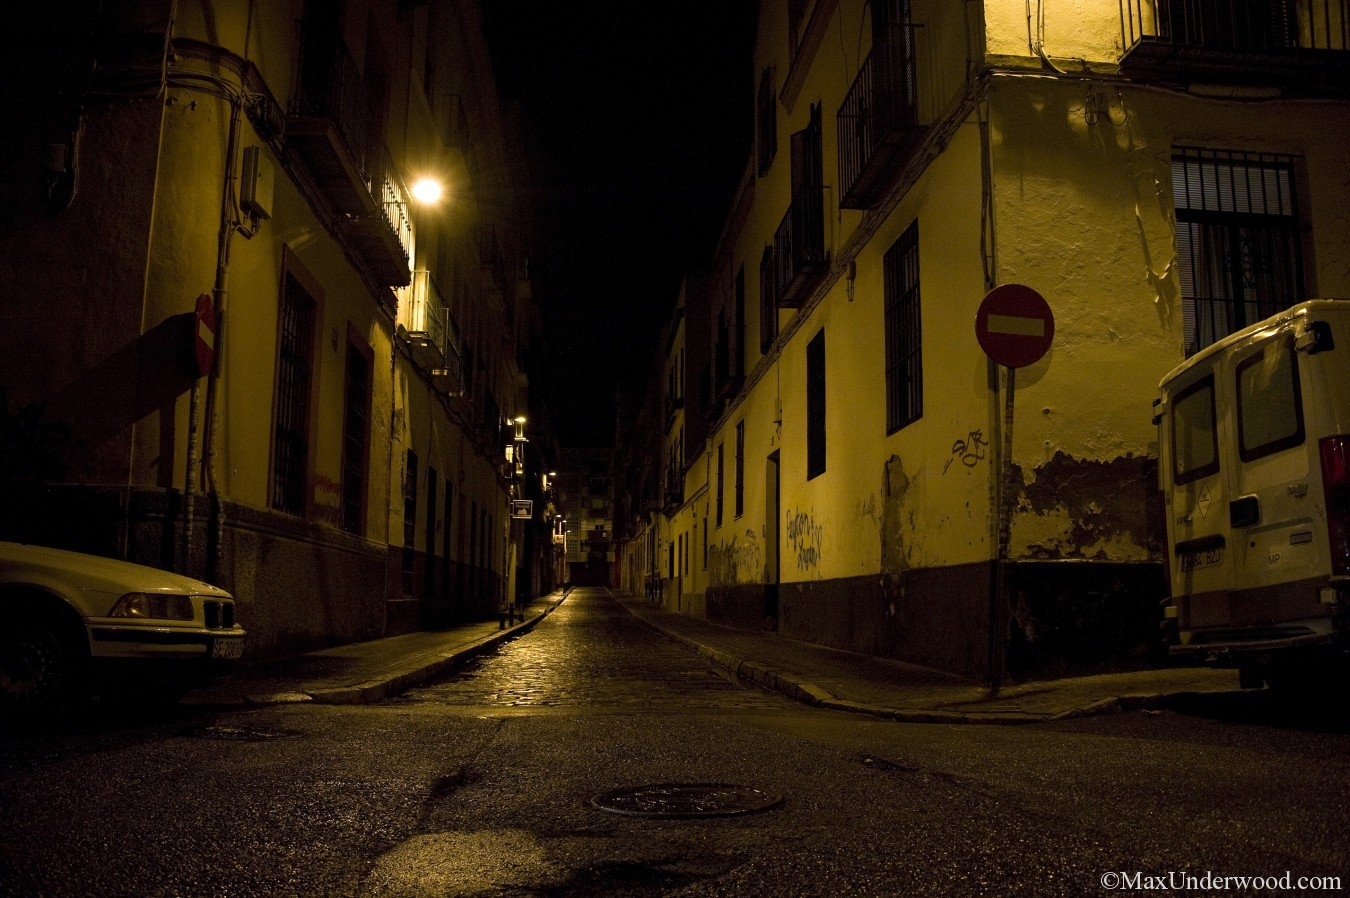 Callejon de Valencia, Spain, Valencia streets at night, Cityscapes